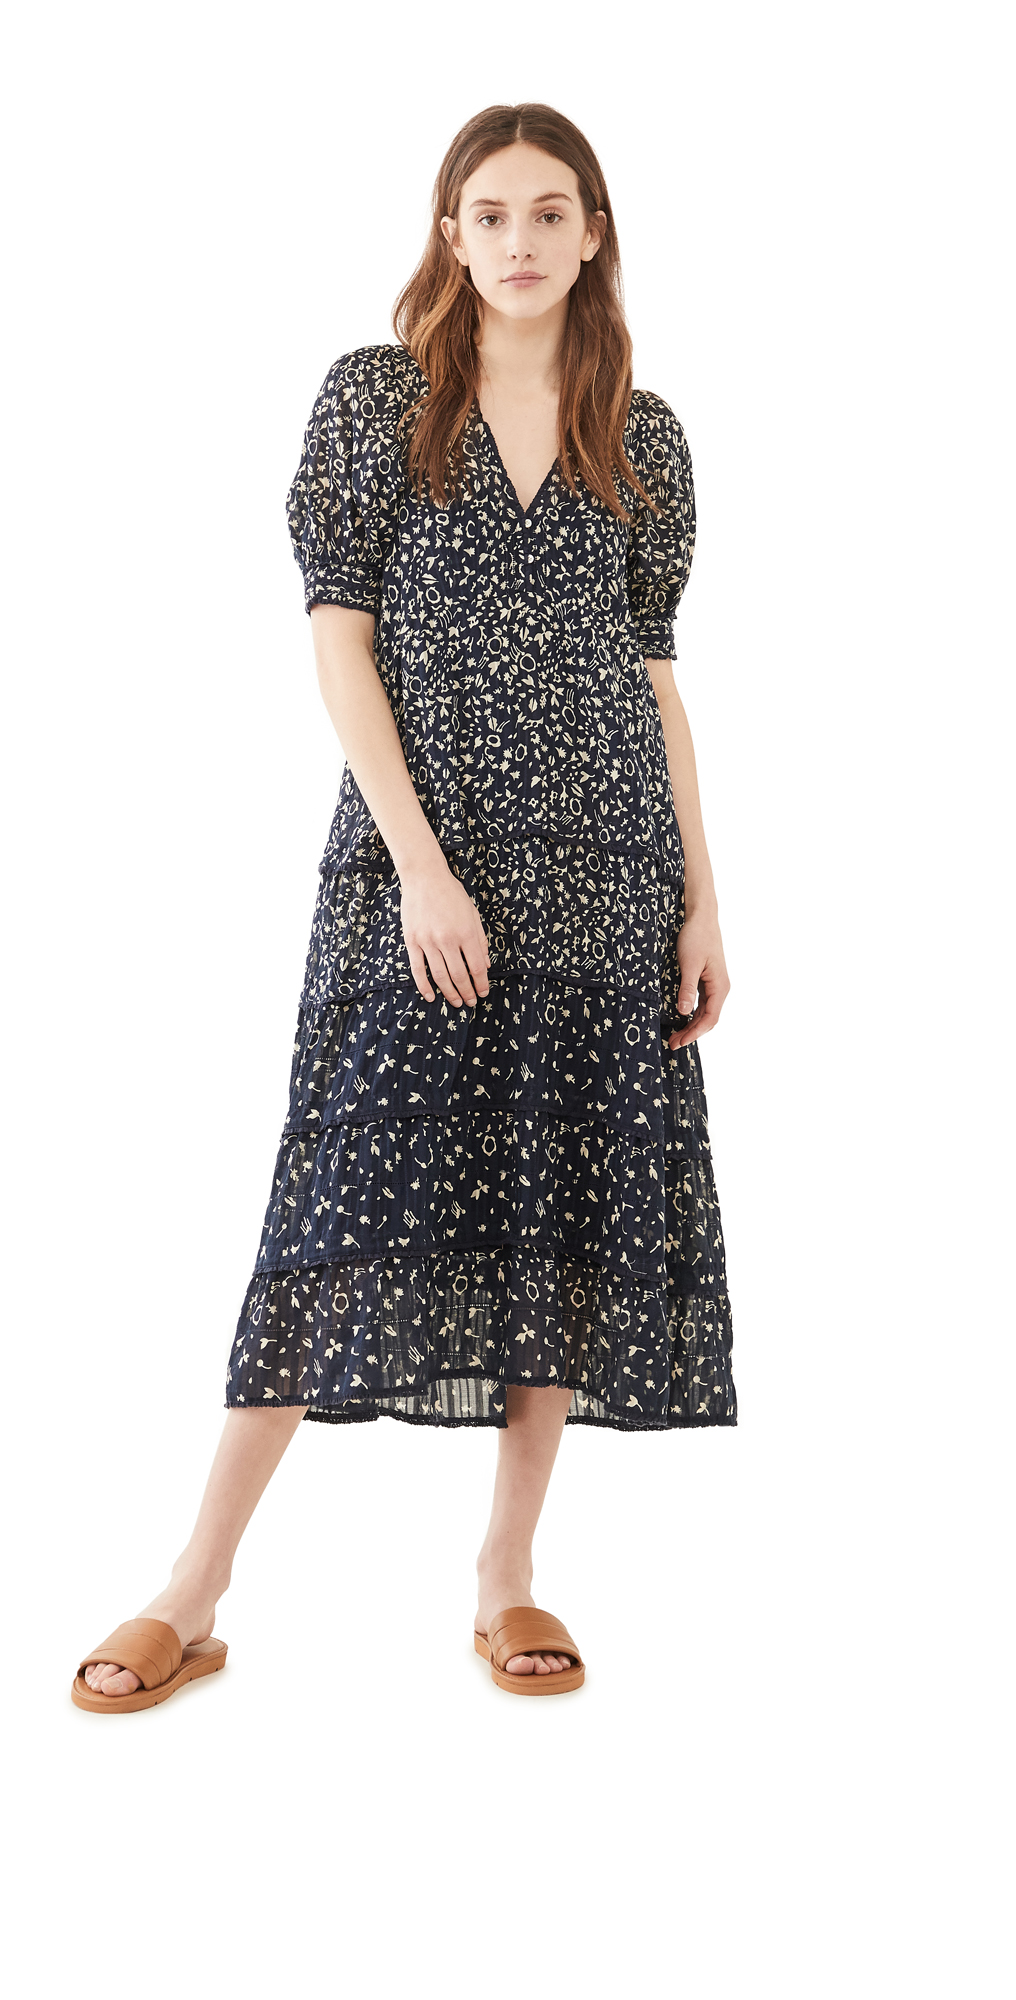 The Great THE YONDER DRESS